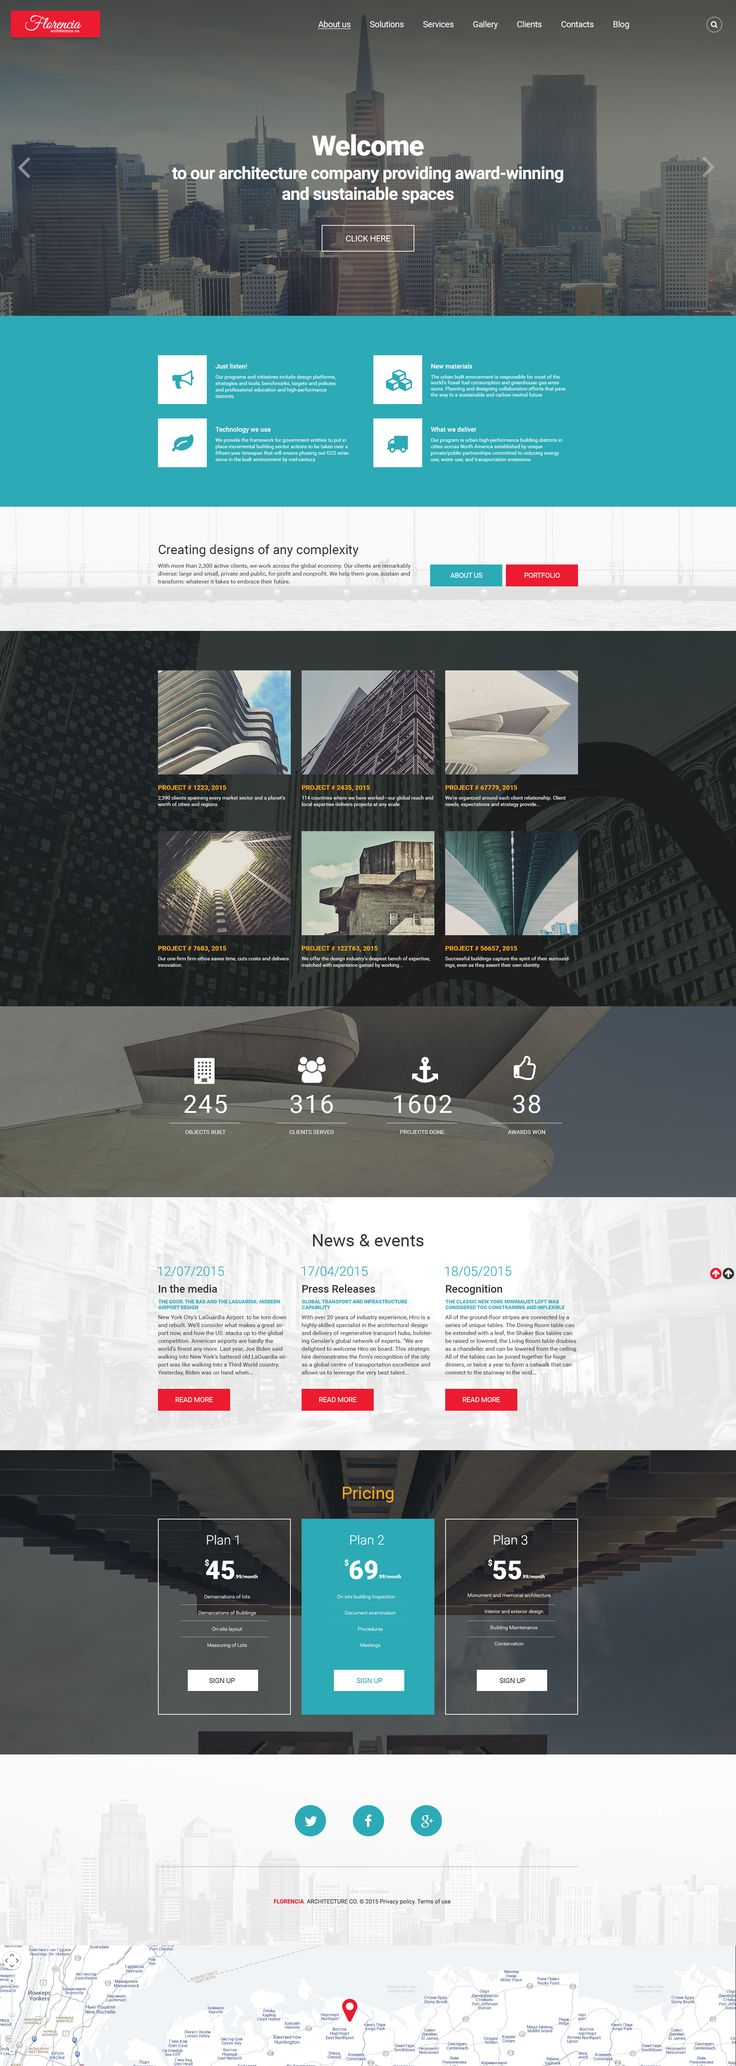 Coming soon: Architecture WordPress Theme. Check Out its release: http://www.templatemonster.com/?utm_source=pinterest&utm_medium=timeline&utm_campaign=comsoon